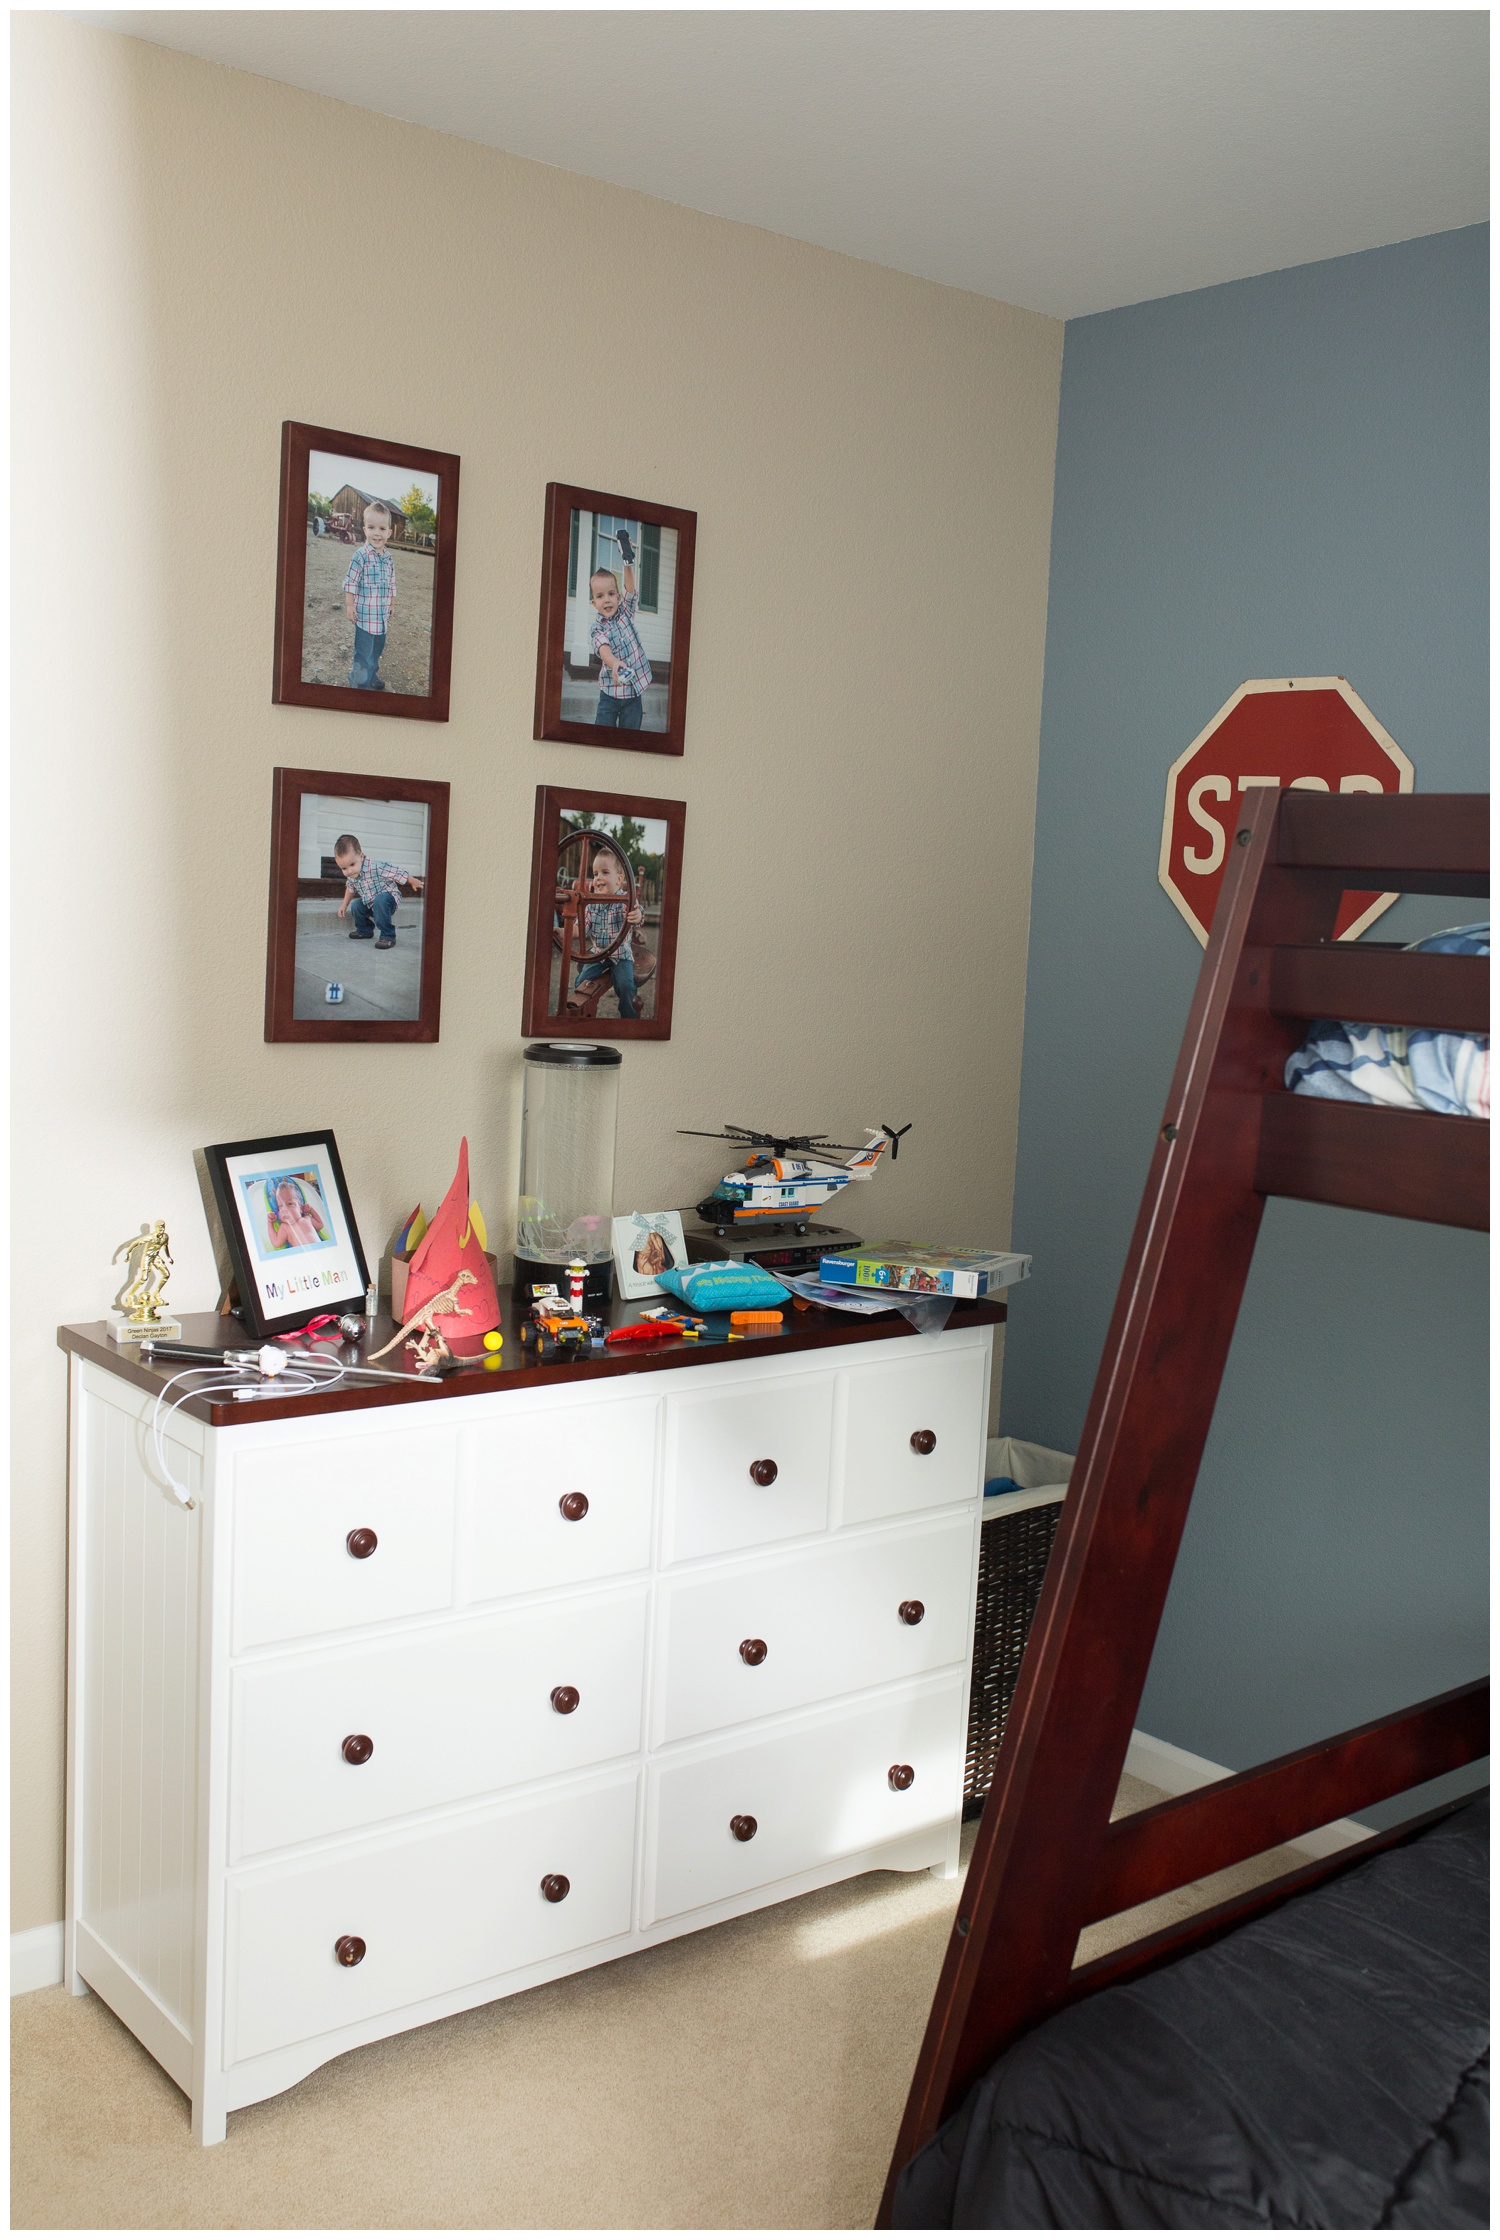 Another before image of of his room. We are holding on to the same dresser for now and we will replace the pictures in the frames with photos of him in his superhero costumes which is going to be so much fun! Stay tuned for those!